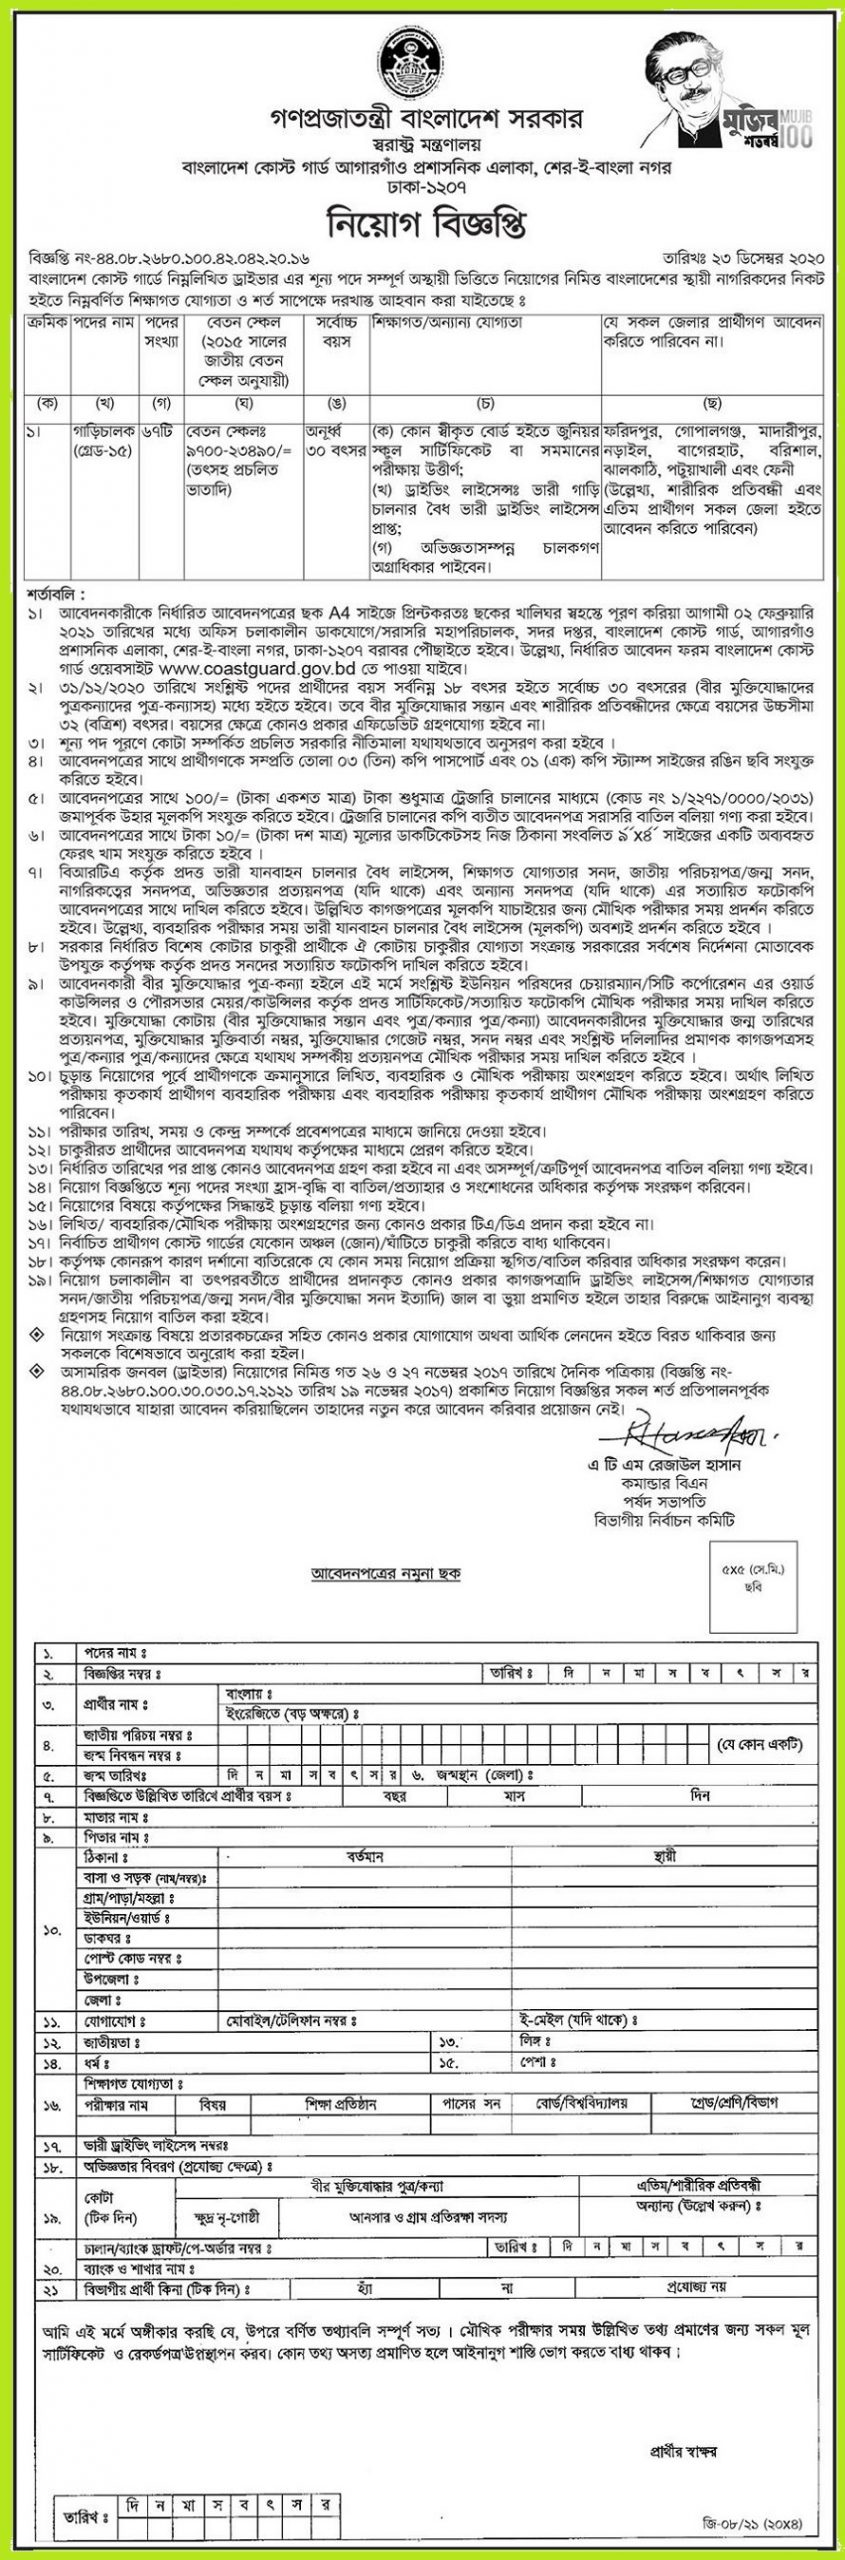 Ministry of Home Affairs Job Circular February 2021